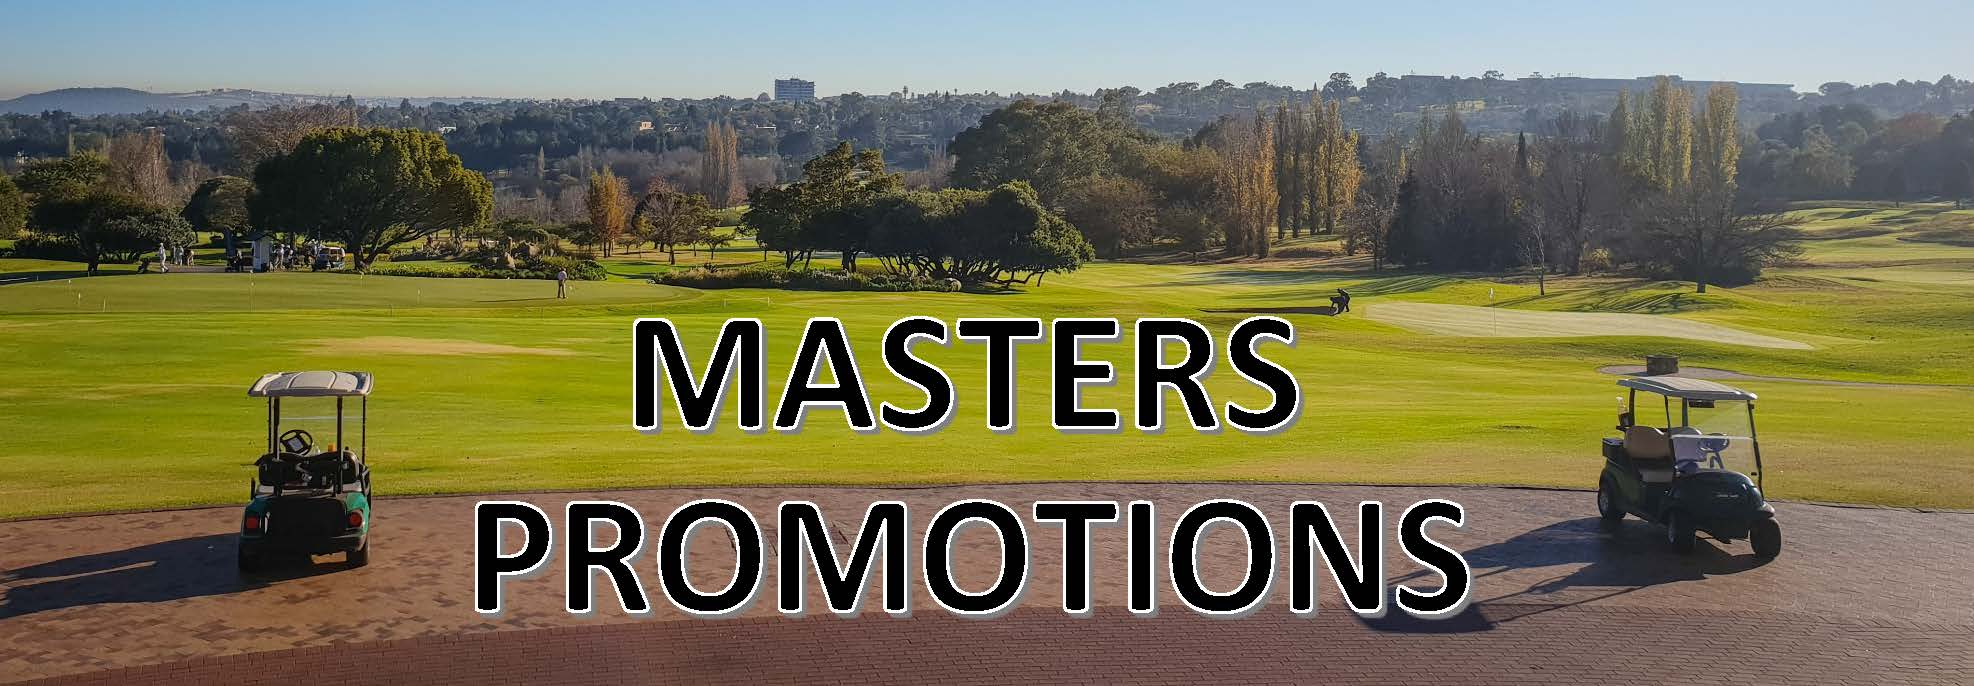 The Masters: Off Course Promotions